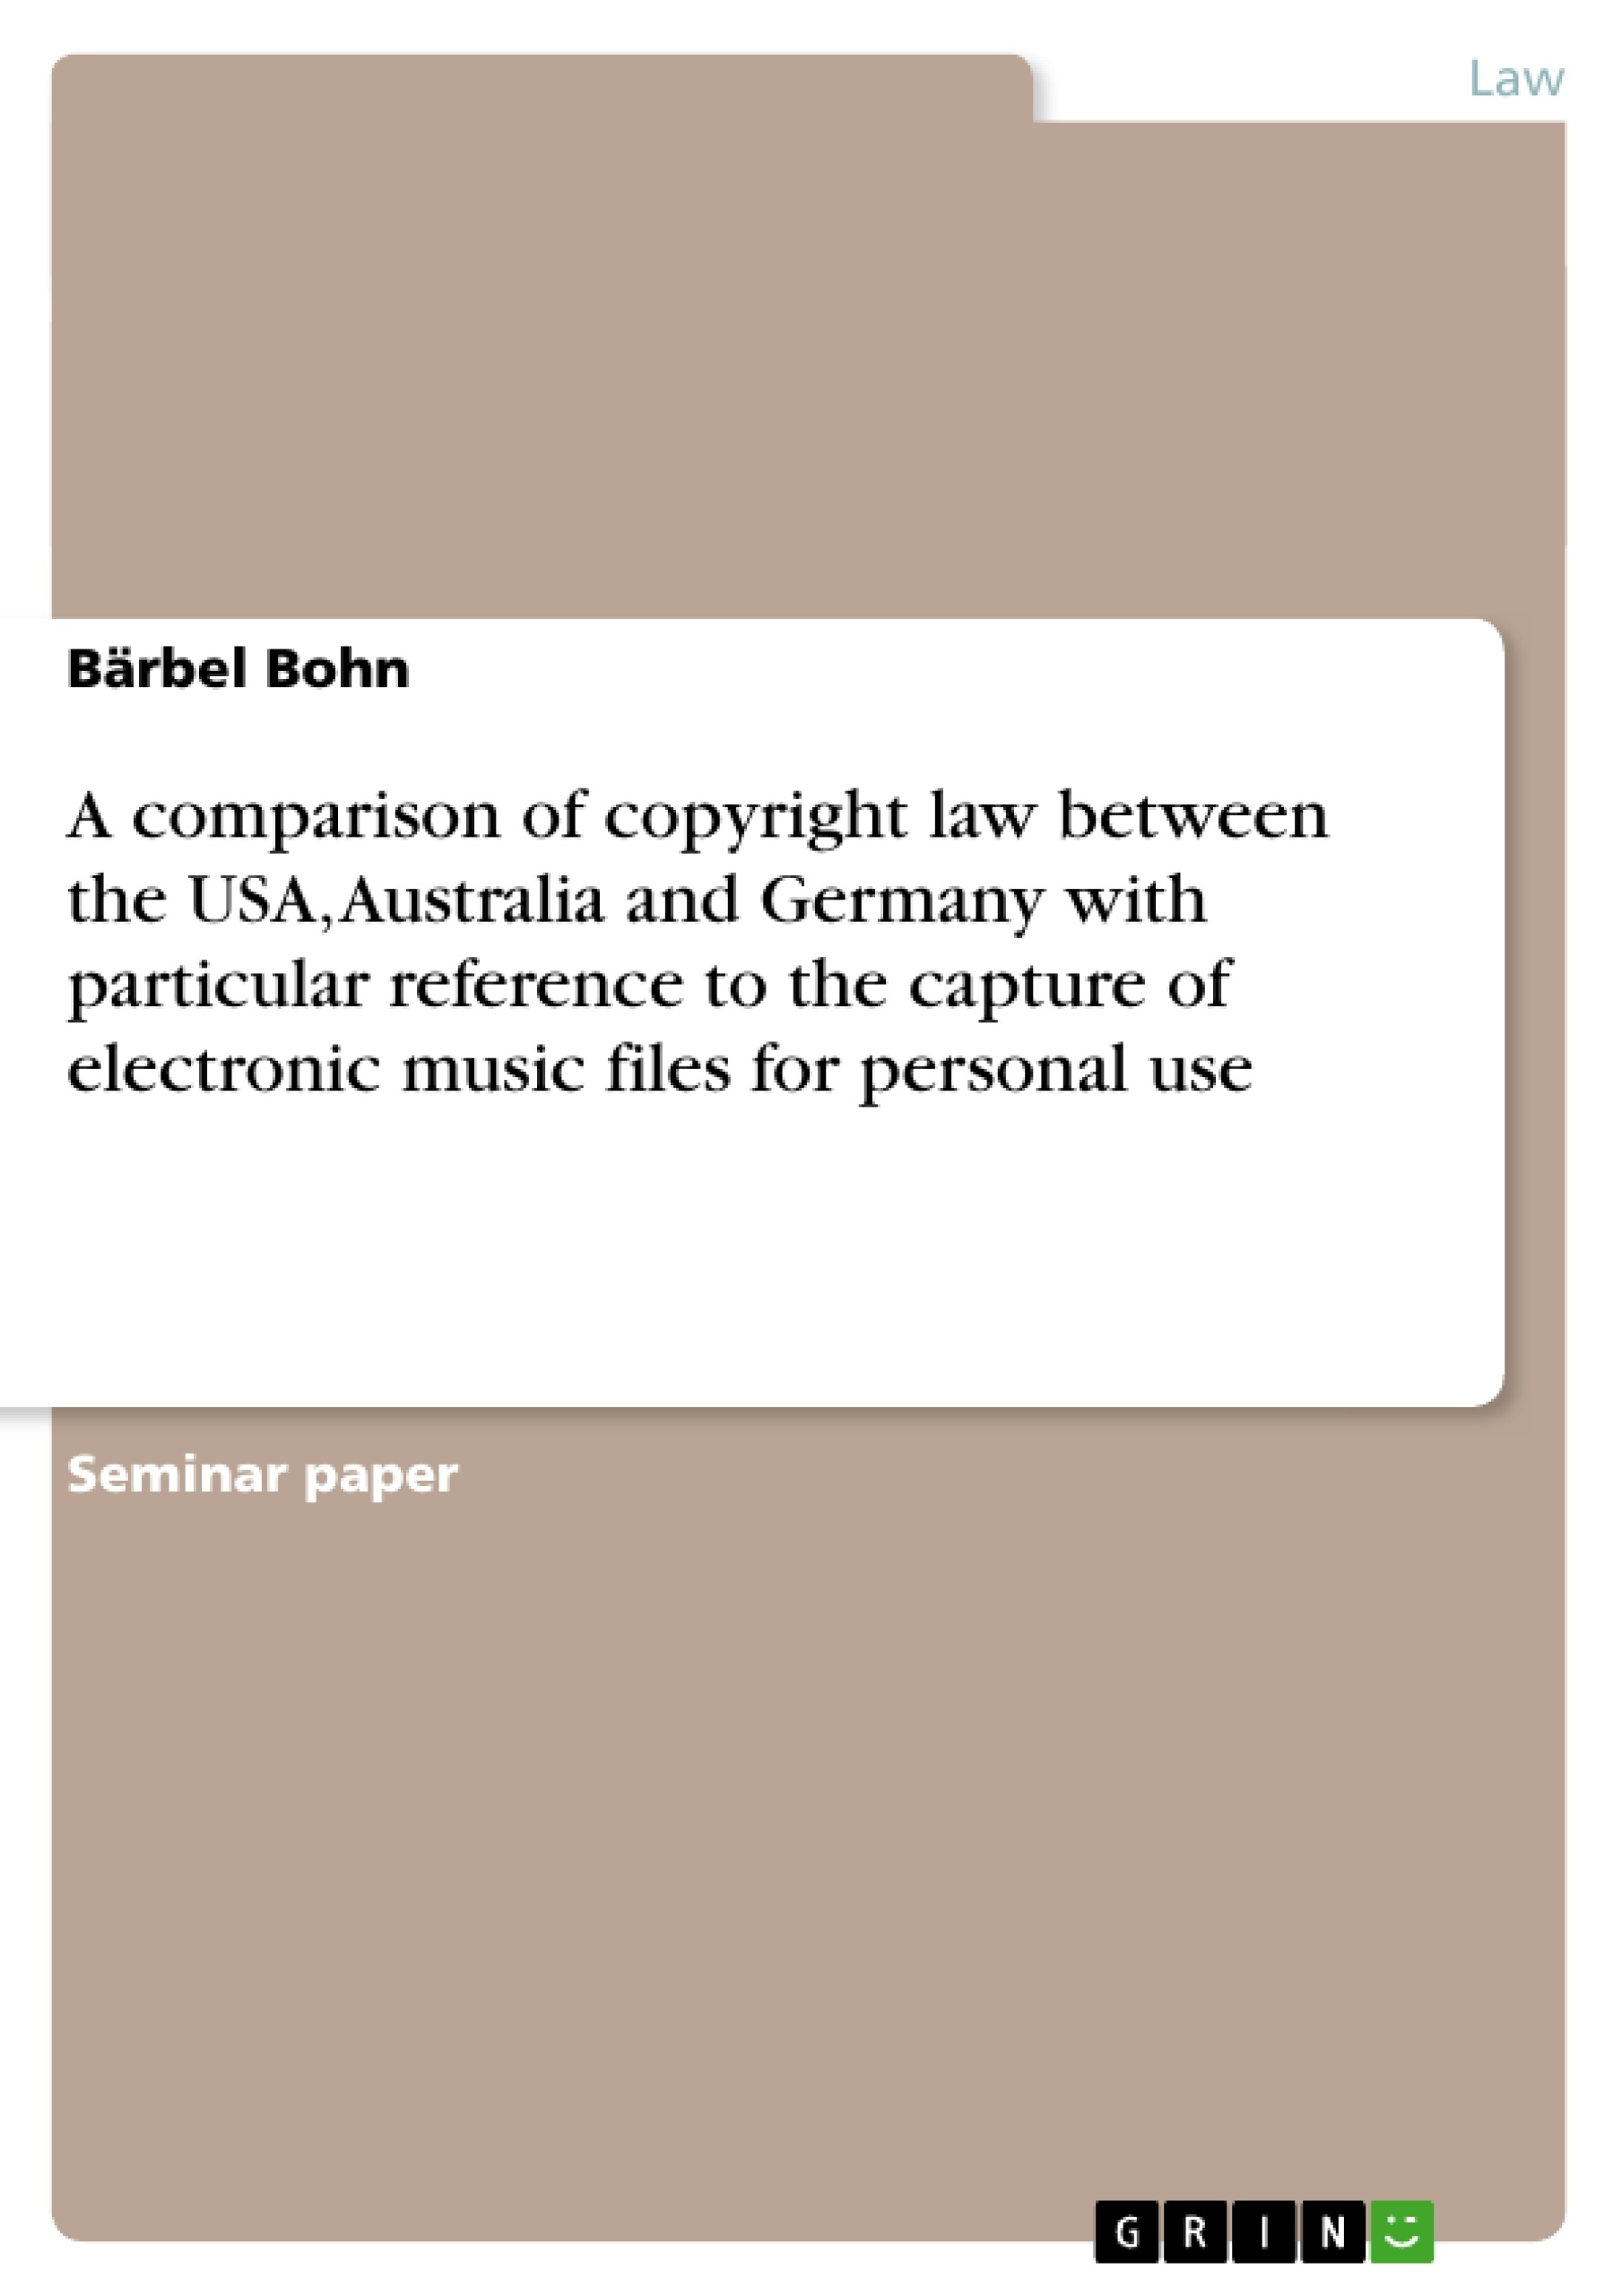 Title: A comparison of copyright law between the USA, Australia and Germany with particular reference to the capture of electronic music files for personal use